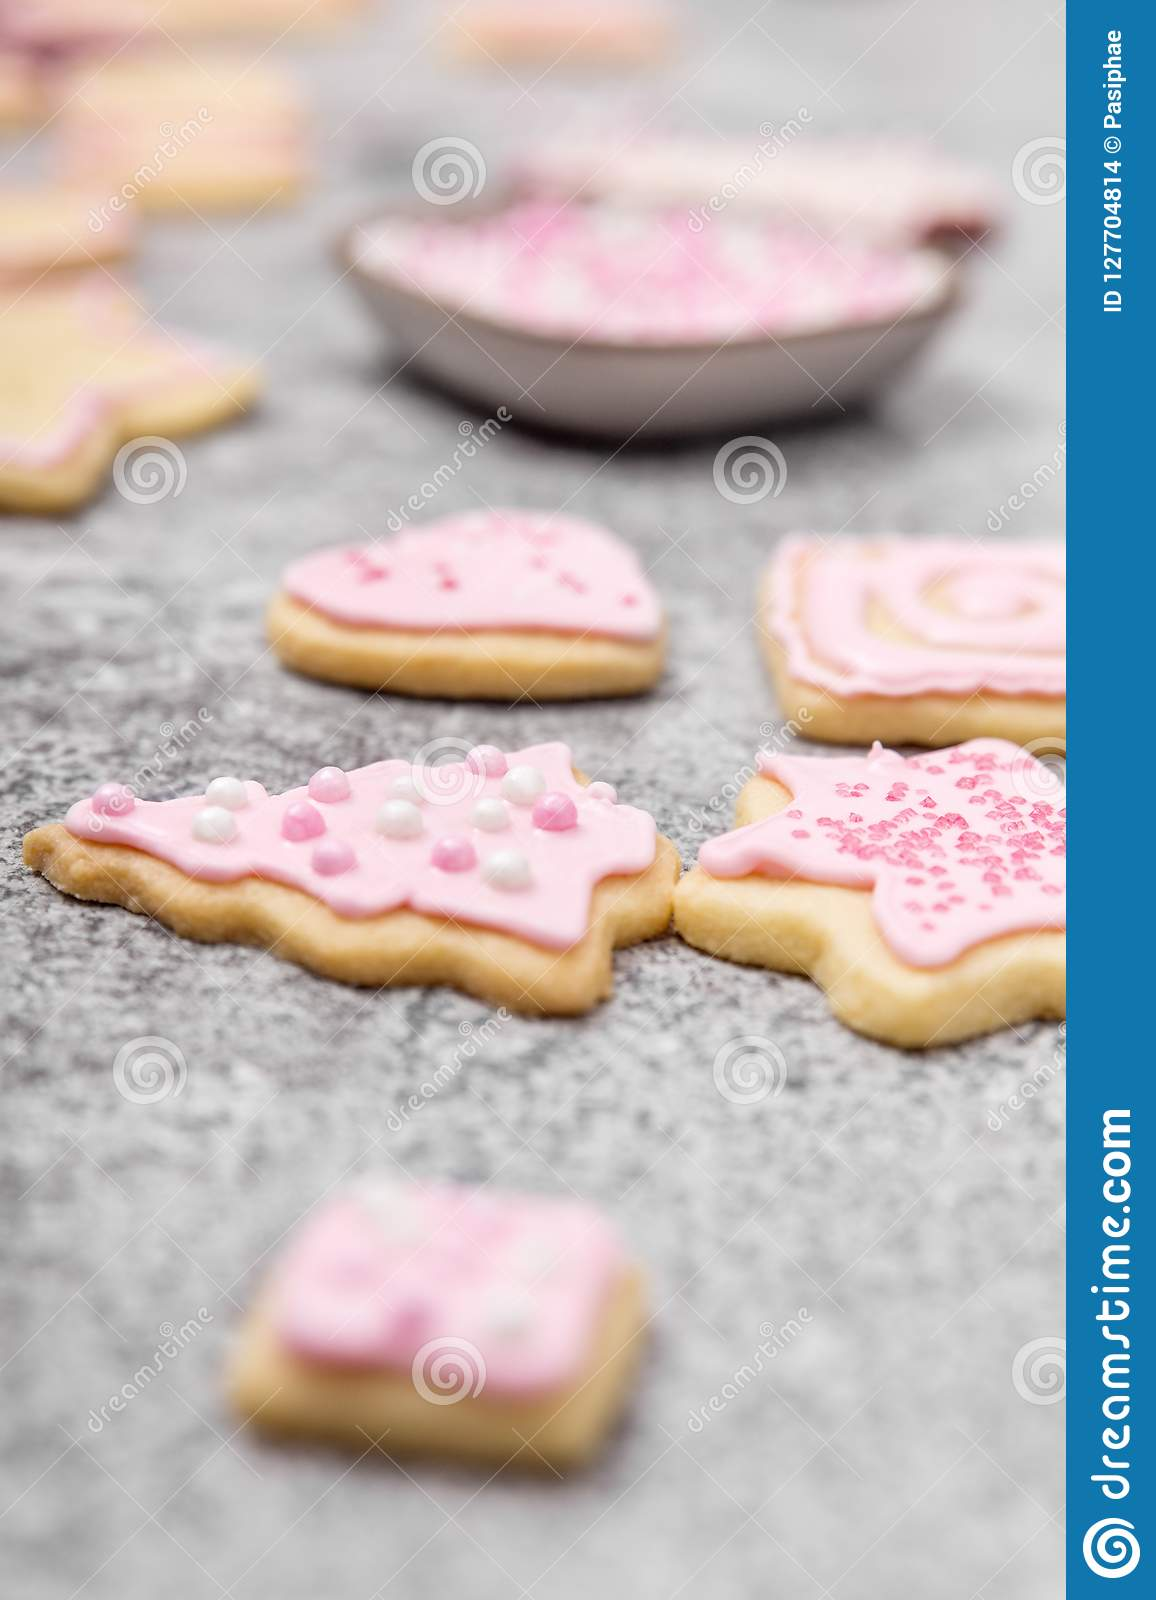 Sugar Bakery Christmas Cookies With Pink Royal Icing And Frosting